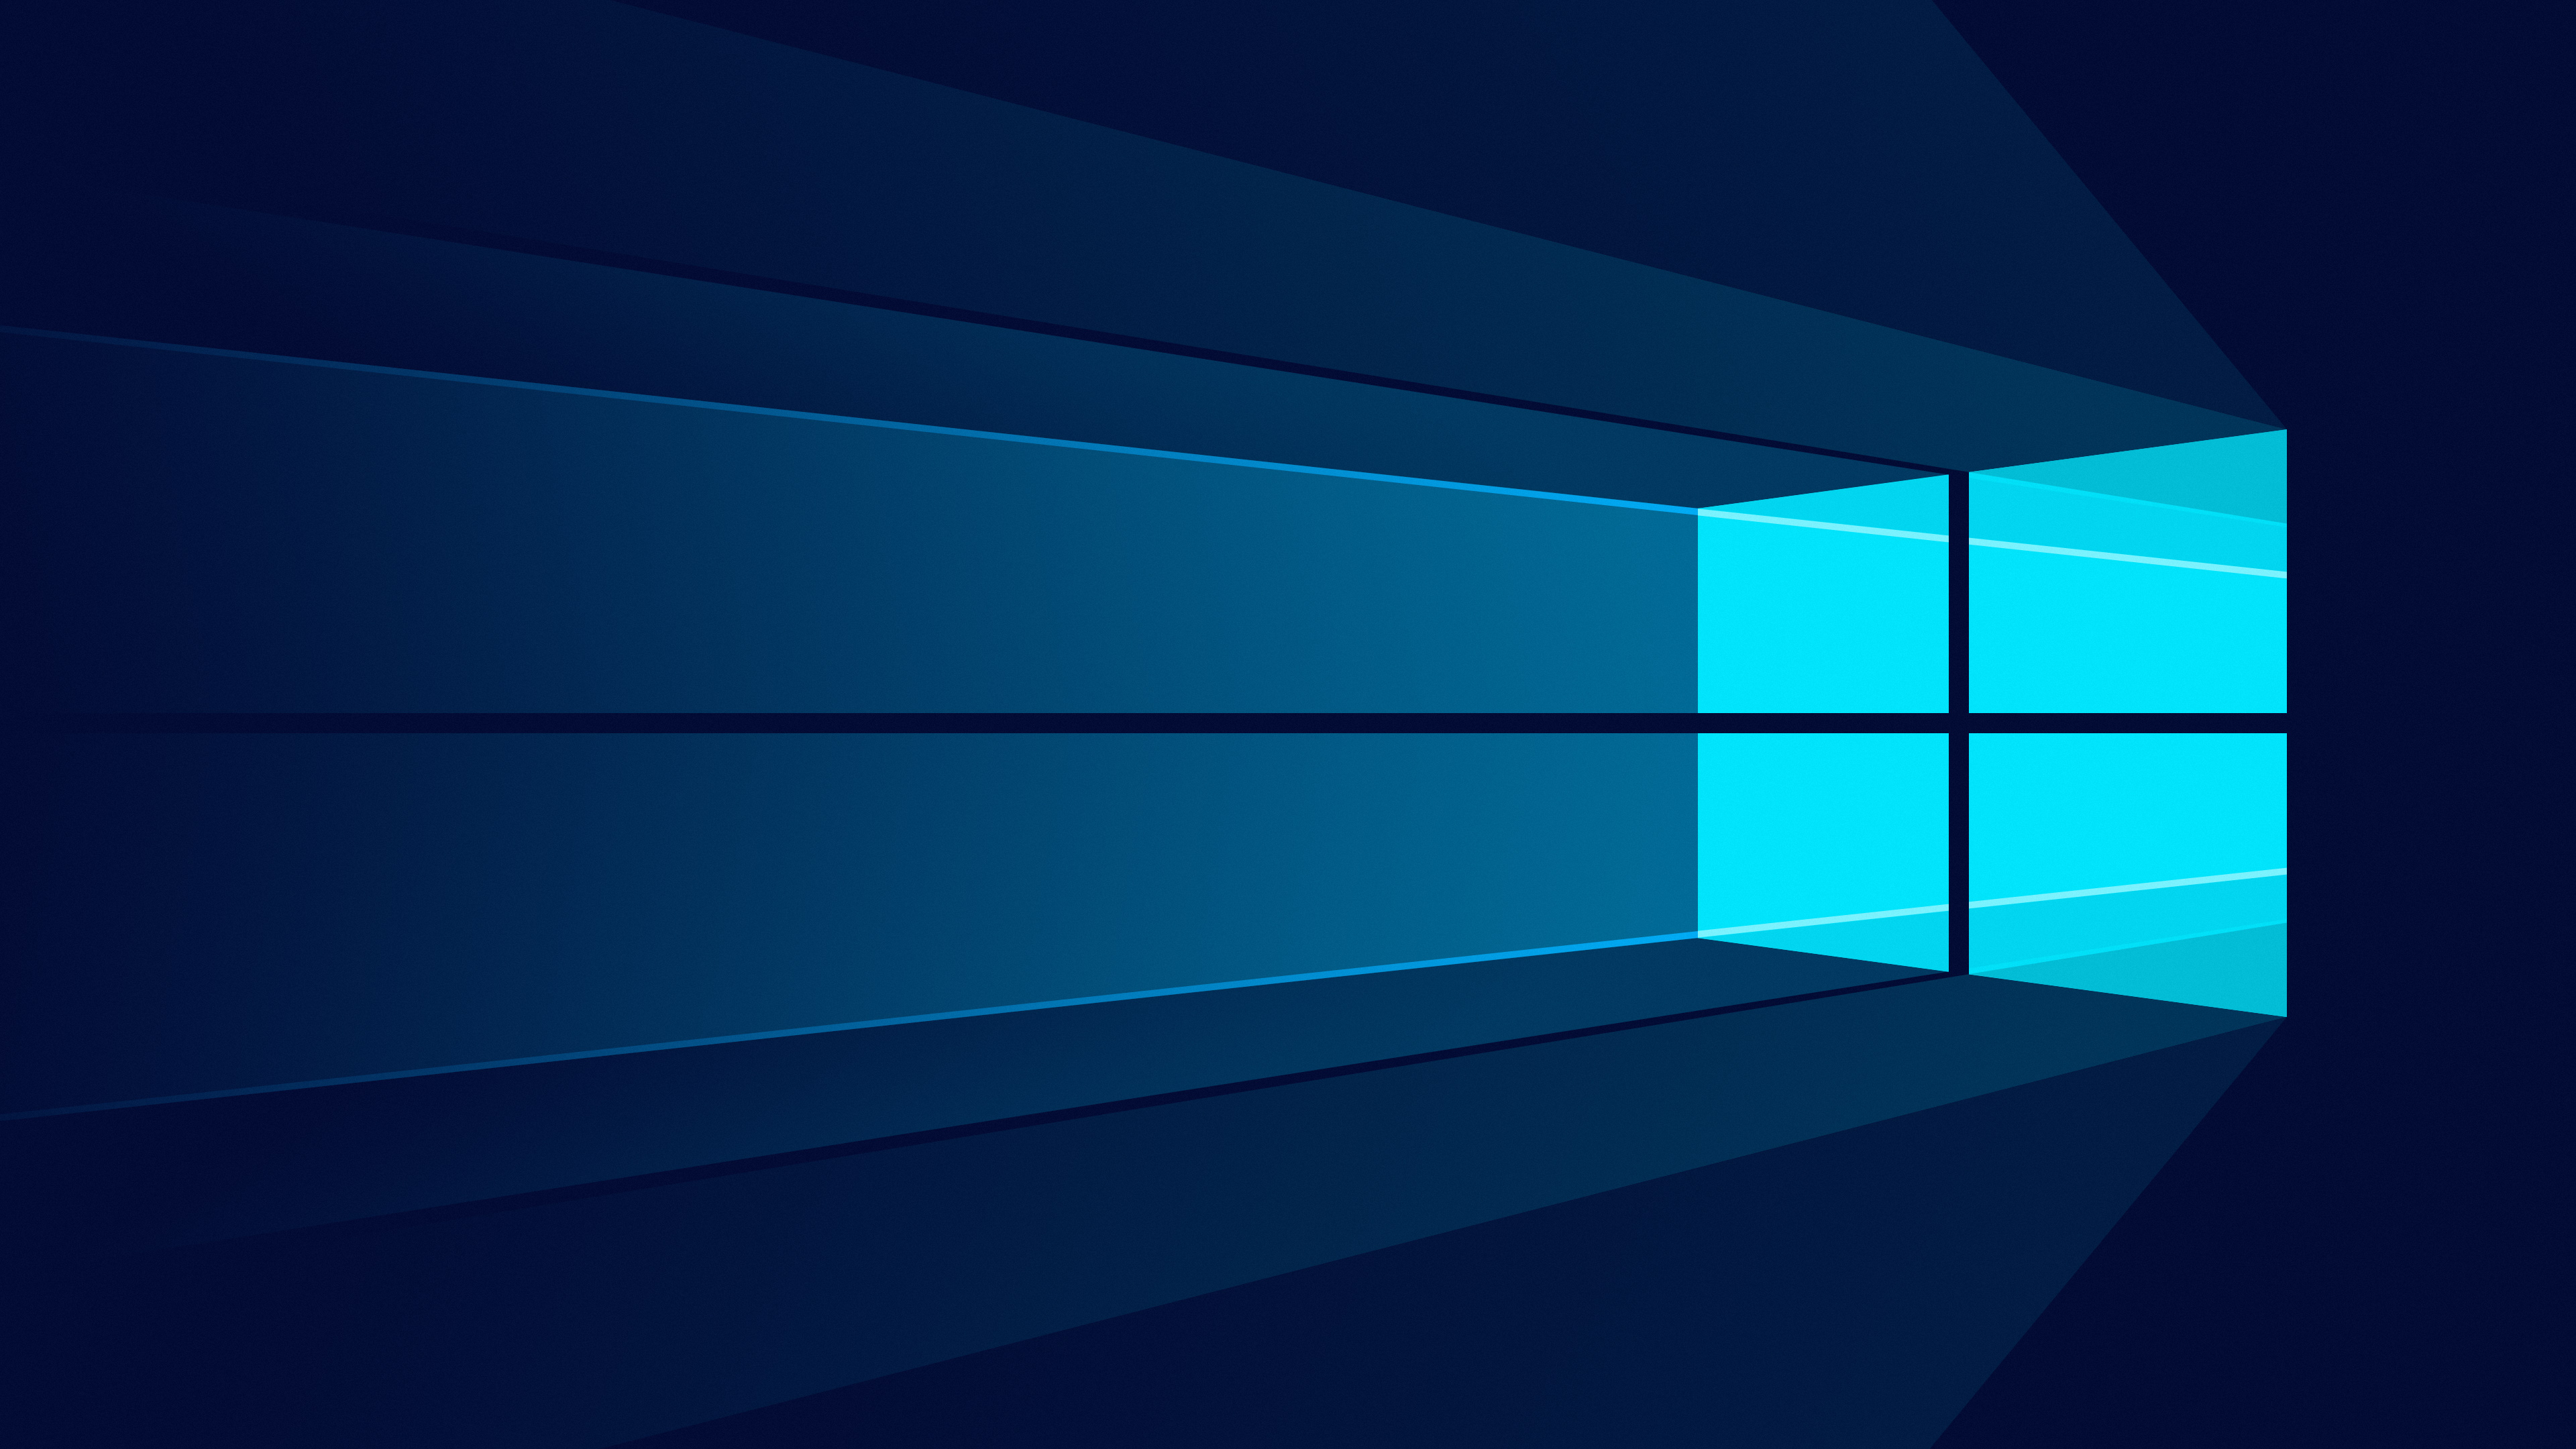 Windows 10 4k Wallpaper Microsoft Windows Minimalist Blue Background Technology 1557